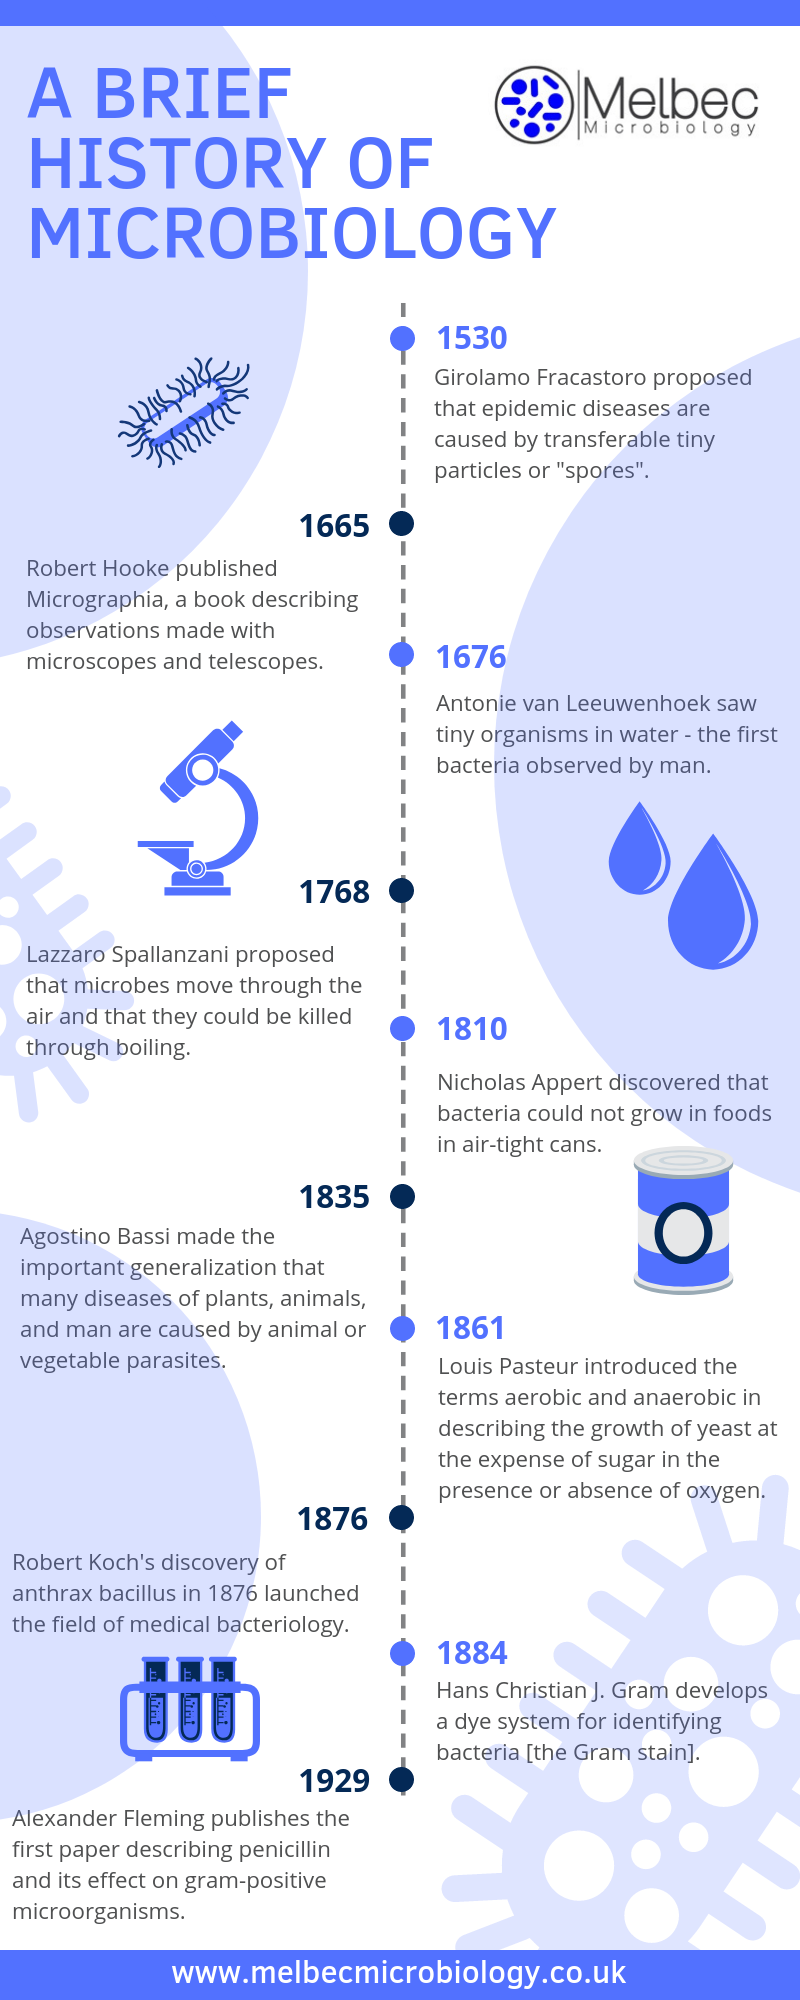 timeline of great events in the history of microbiology